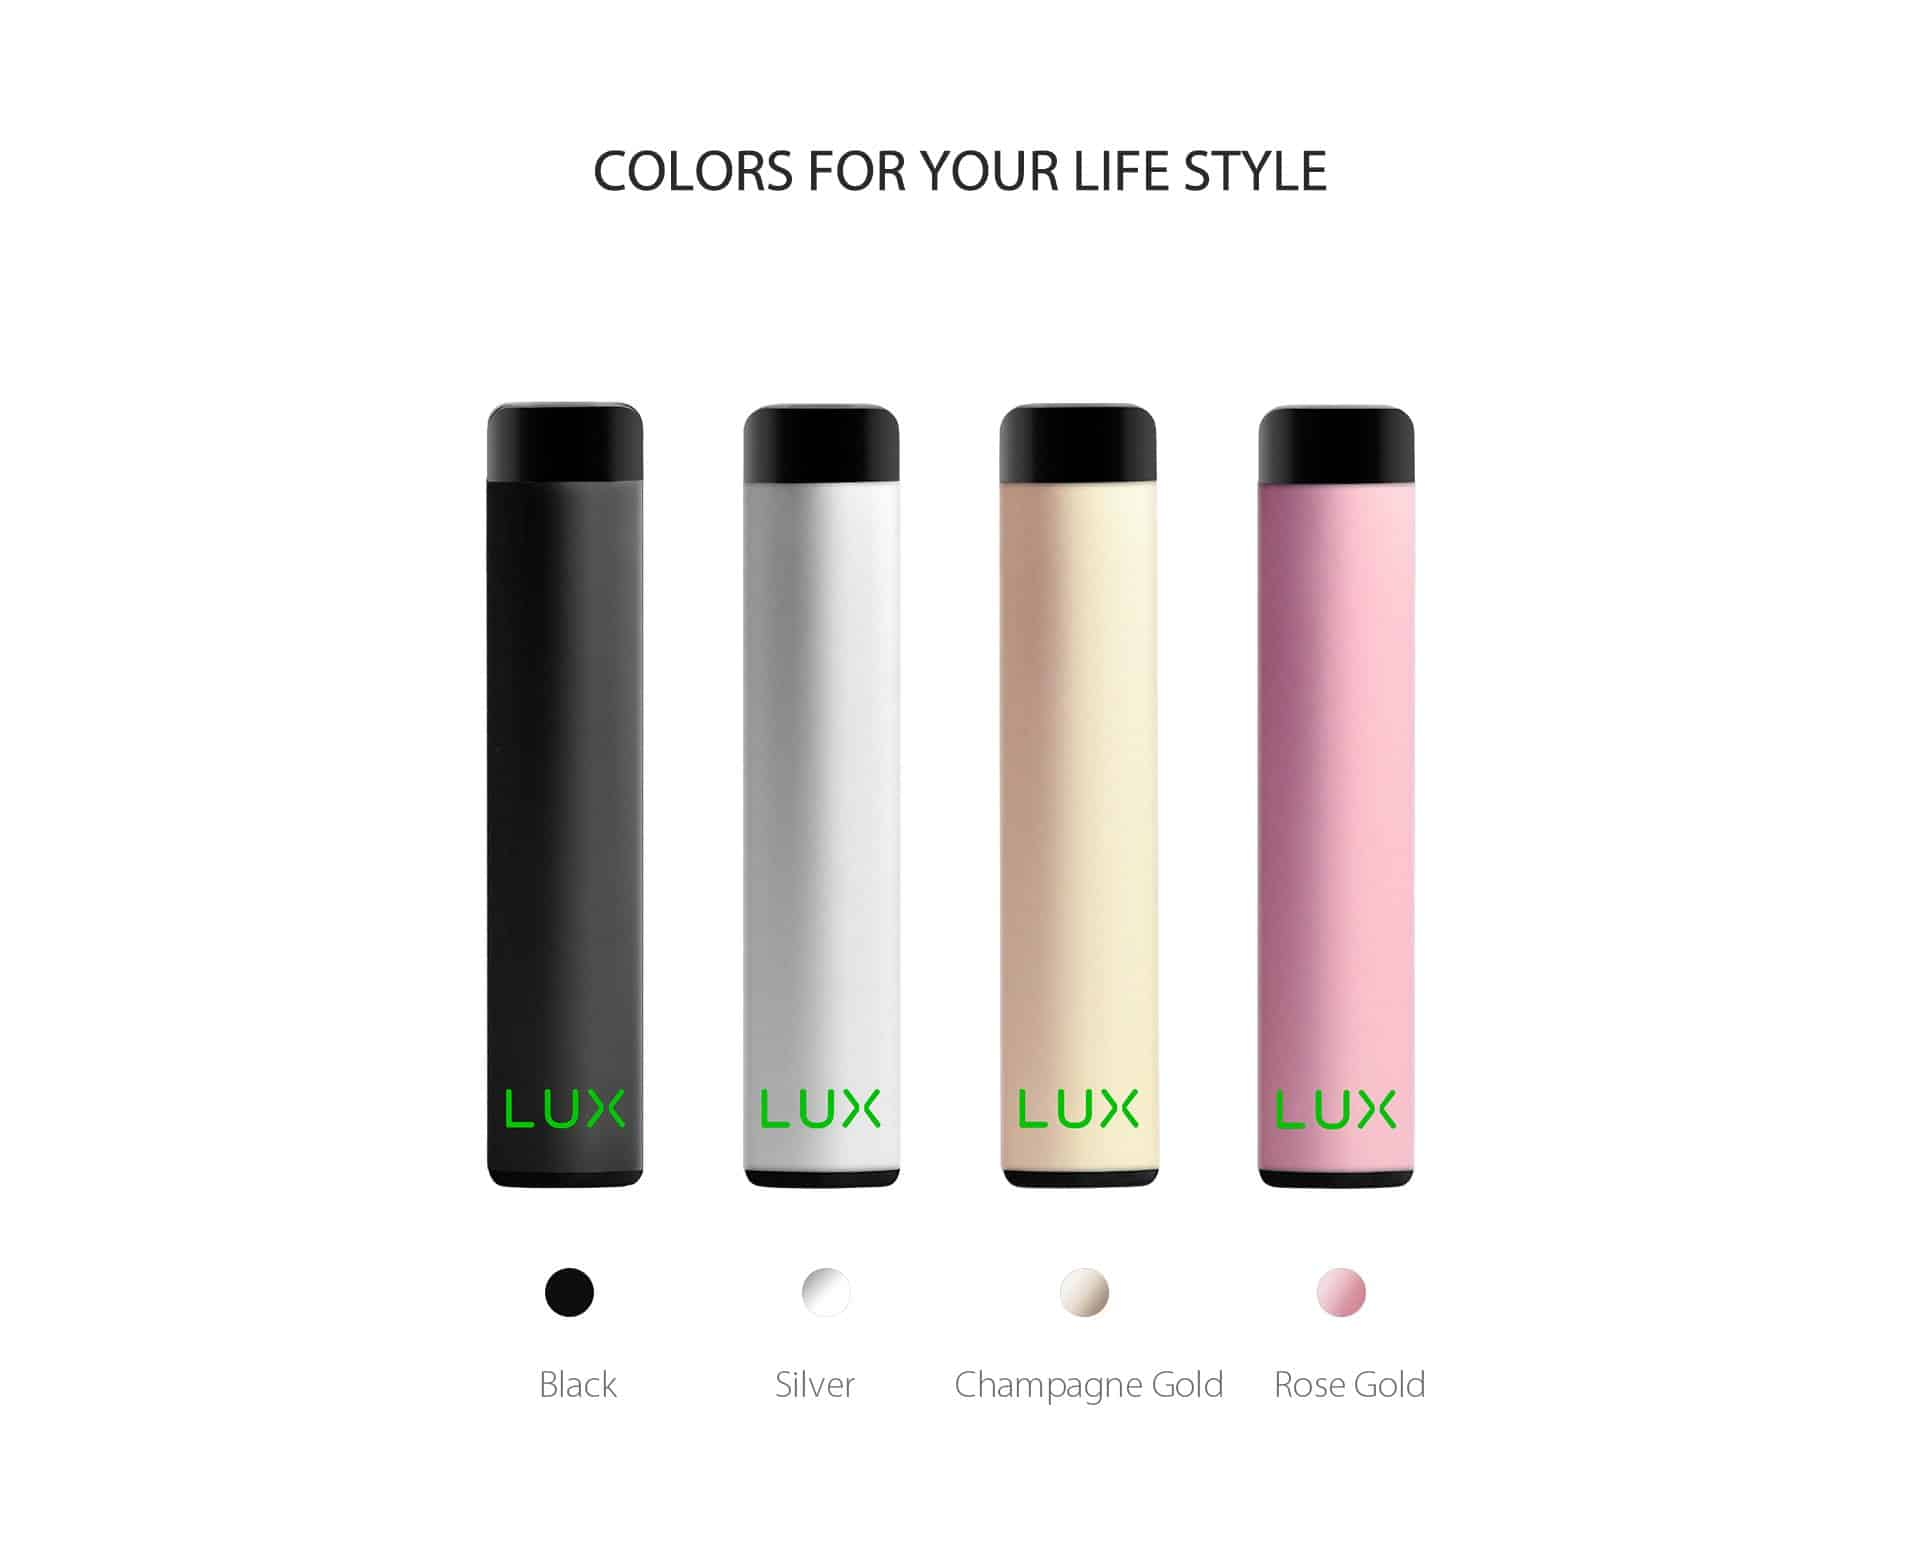 Wellon LUX Pod is a refillable pod vape gear, four colors for your stylish life, including black, silver, champagne gold, and rose gold Wellon LUX Pod versions.